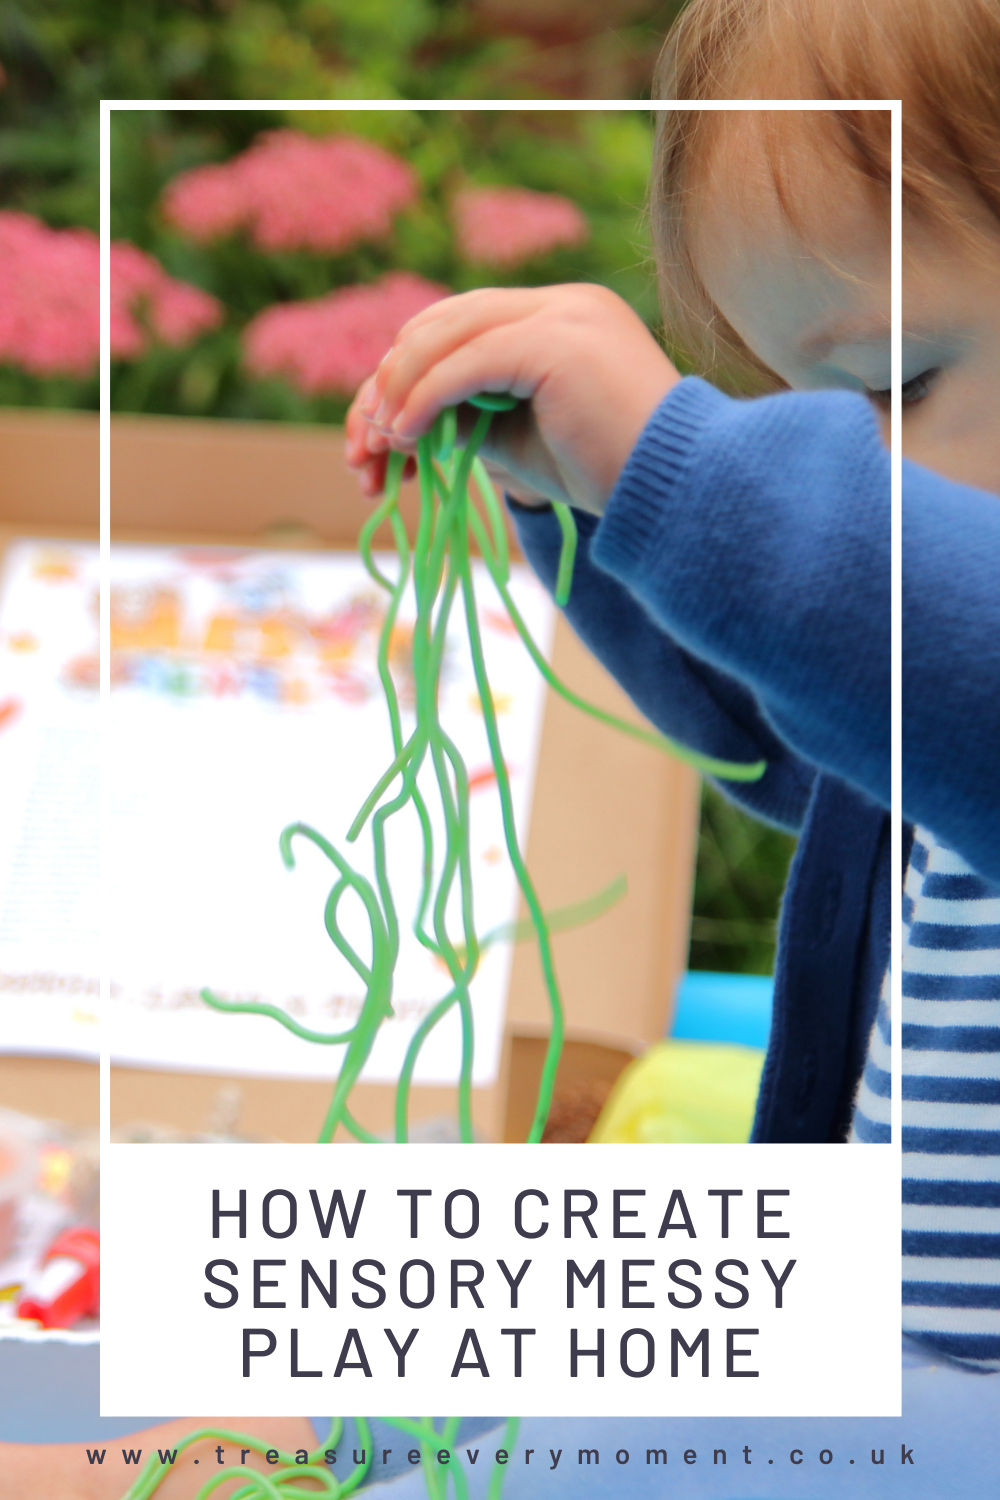 BABY & TODDLER: How to Create Sensory Messy Play at Home with Messy Senses